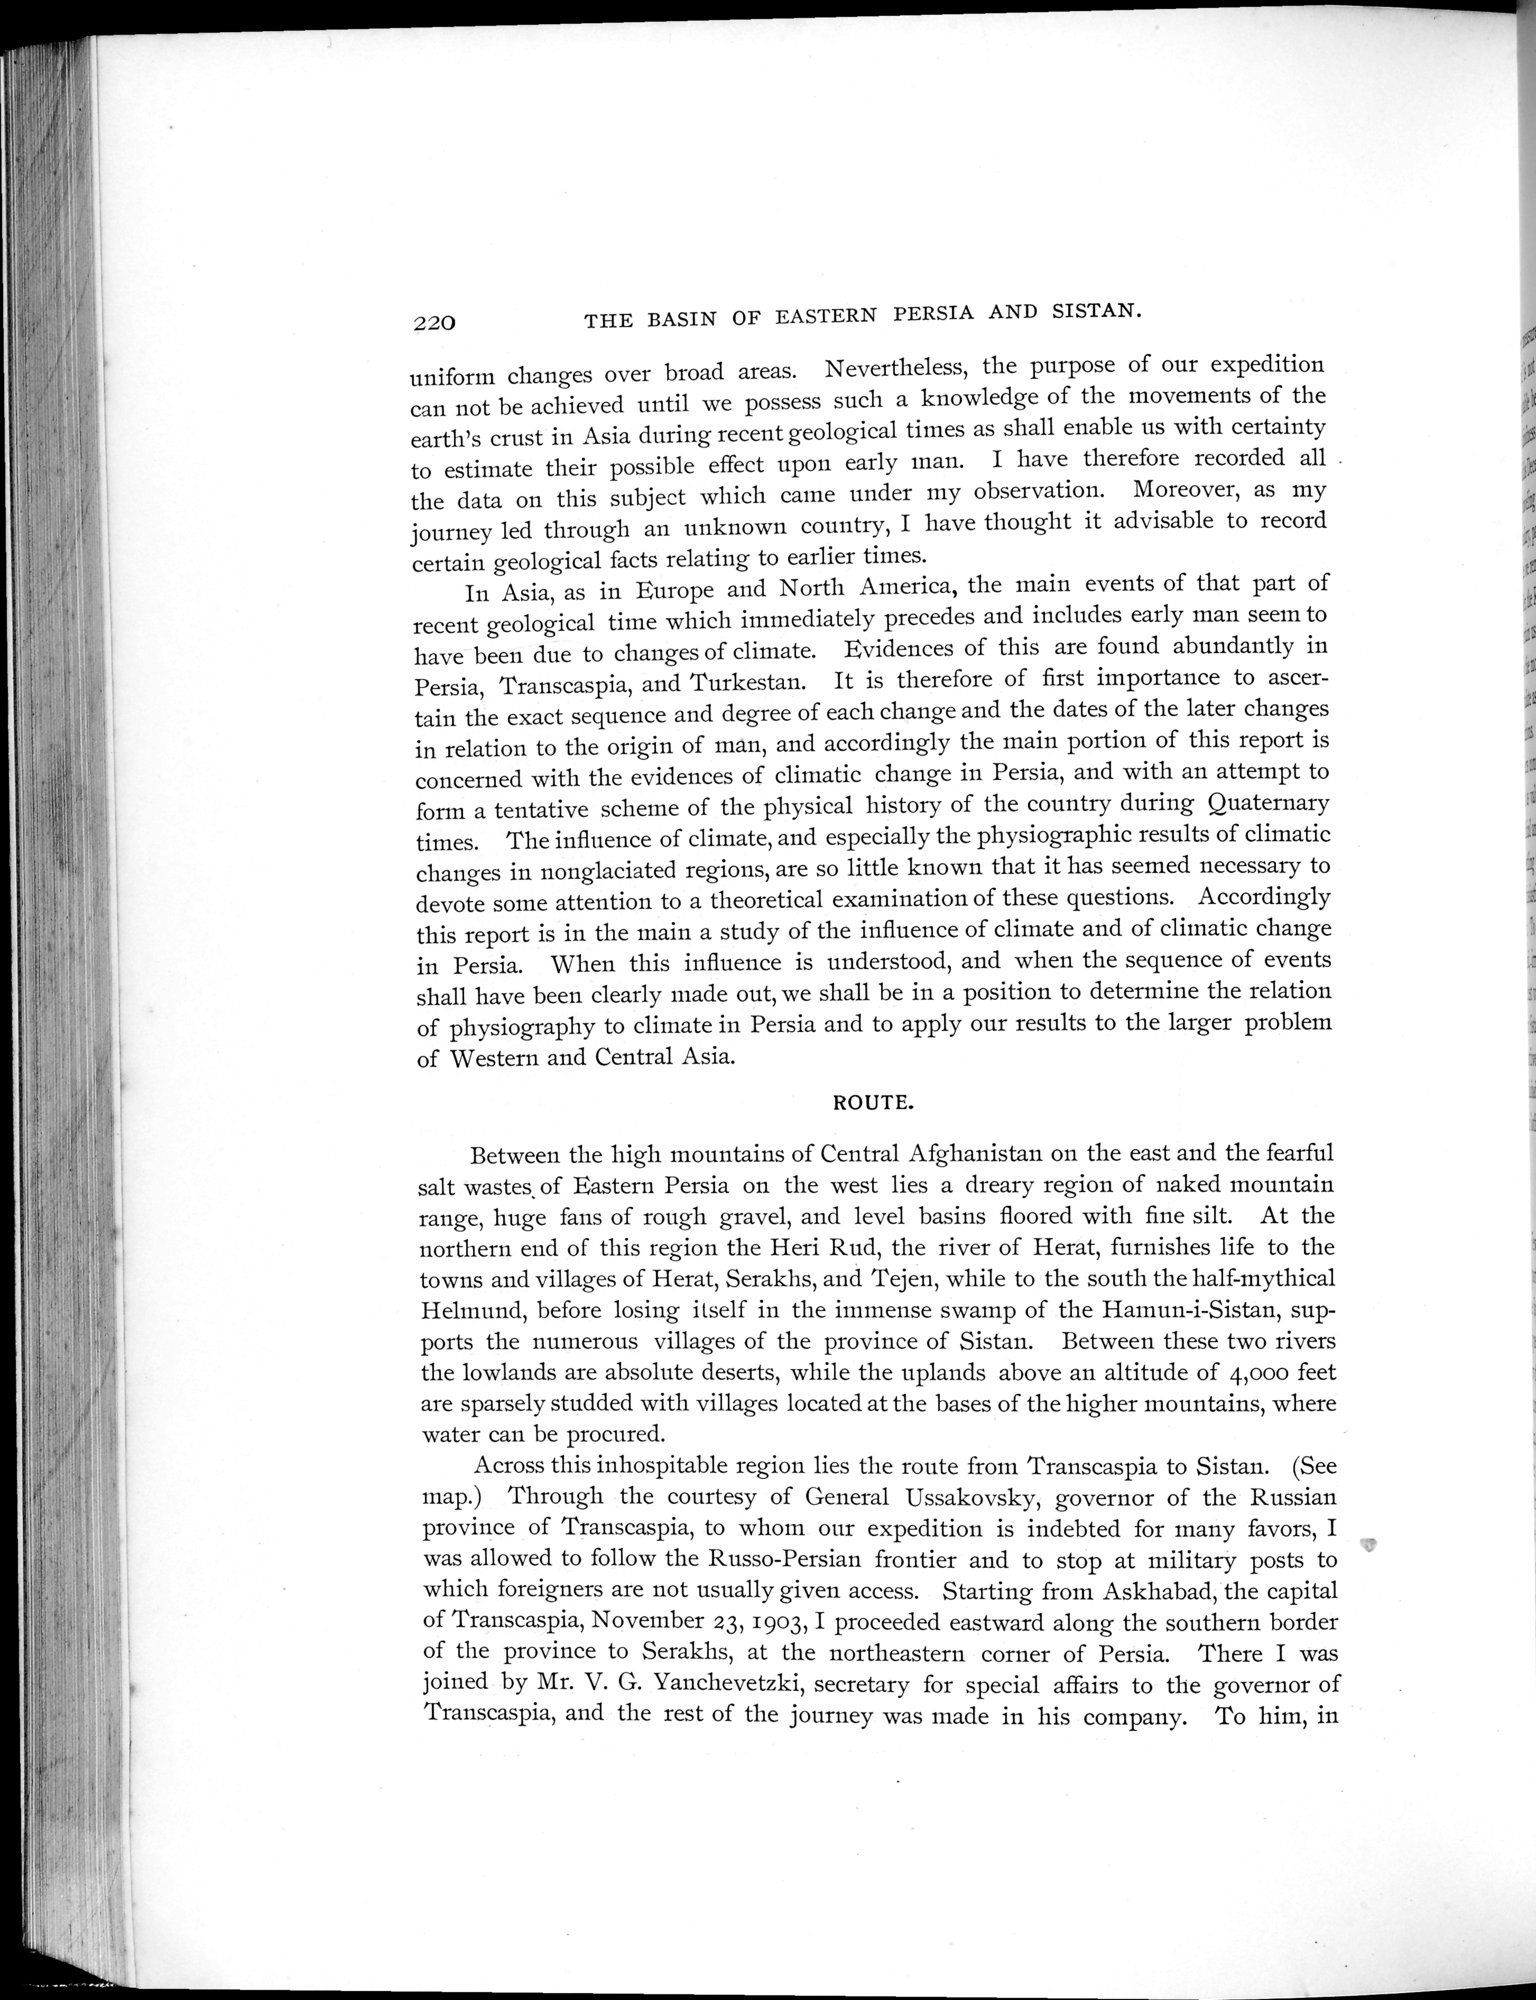 Explorations in Turkestan 1903 : vol.1 / Page 252 (Grayscale High Resolution Image)